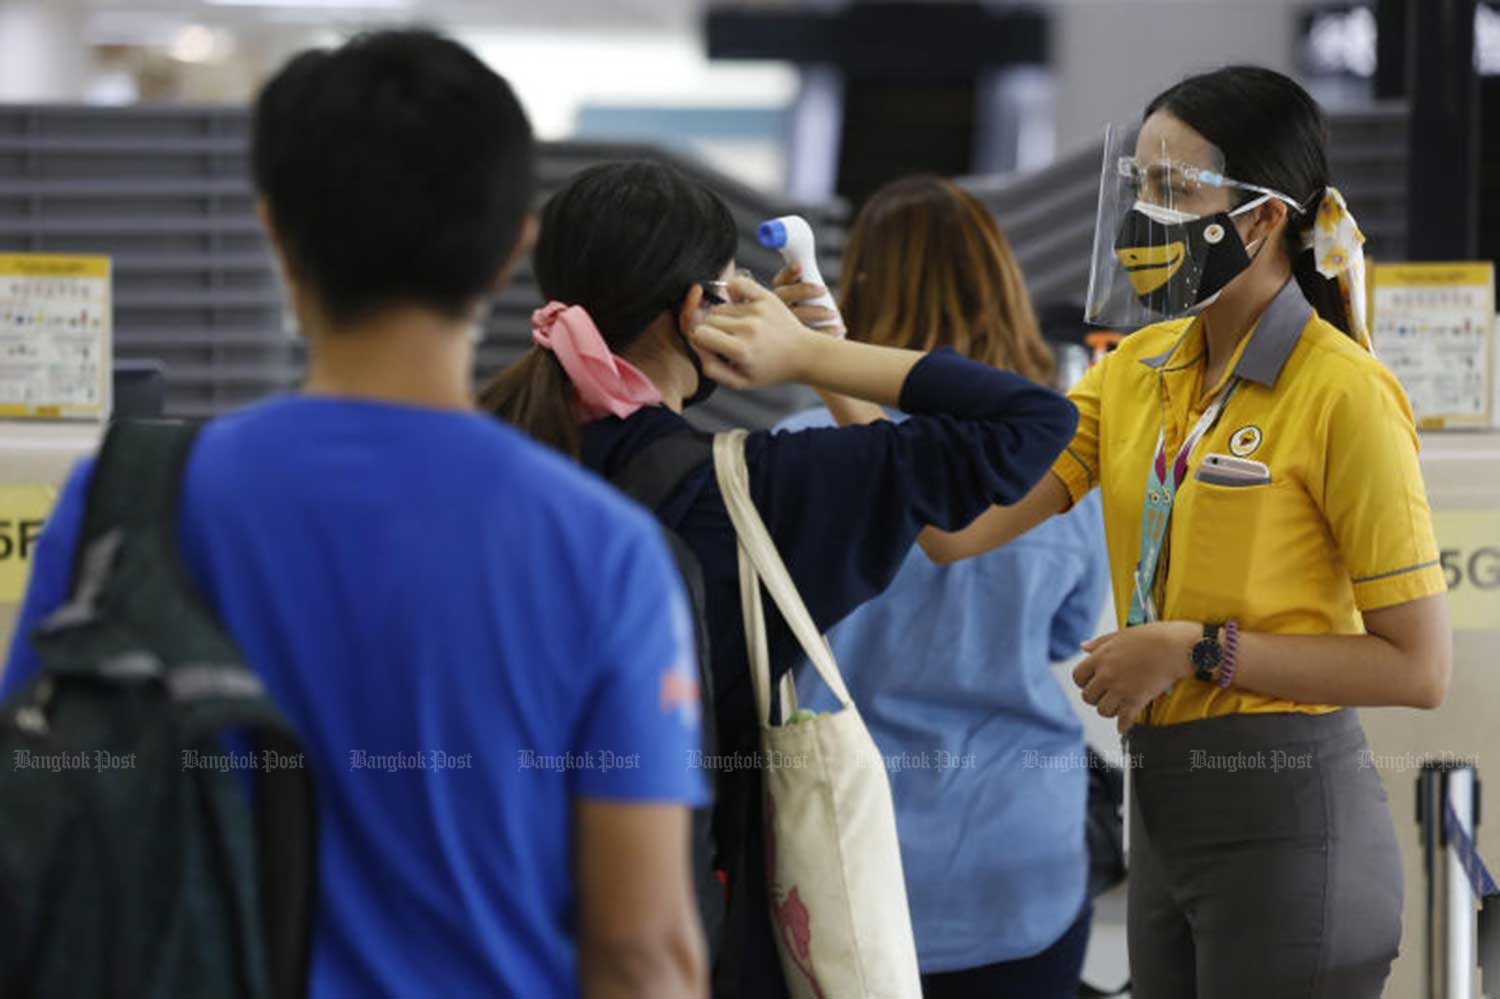 An airline staff member checks the temperature of passengers at Don Mueang airport on Friday, the first day domestic flights resumed. (Photo by Pornprom Satrabhaya)